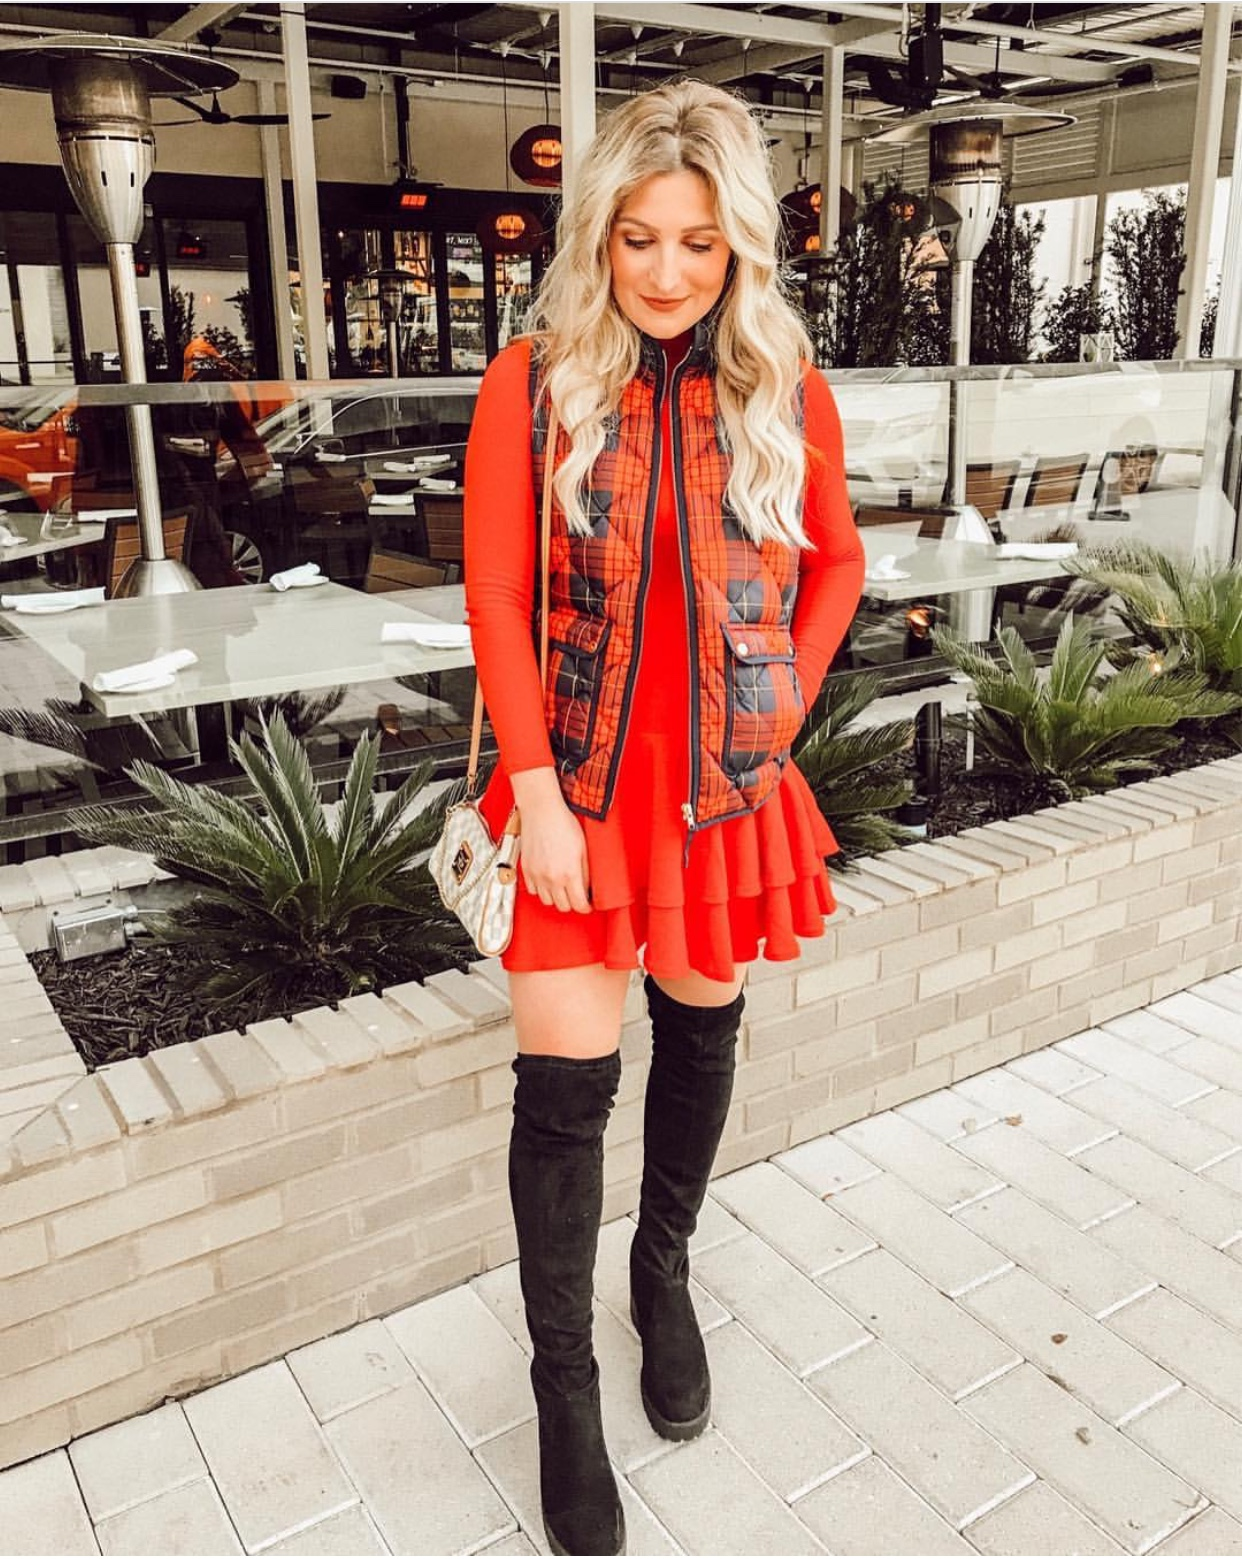 holiday red | Audrey Madison Stowe a fashion and lifestyle blogger